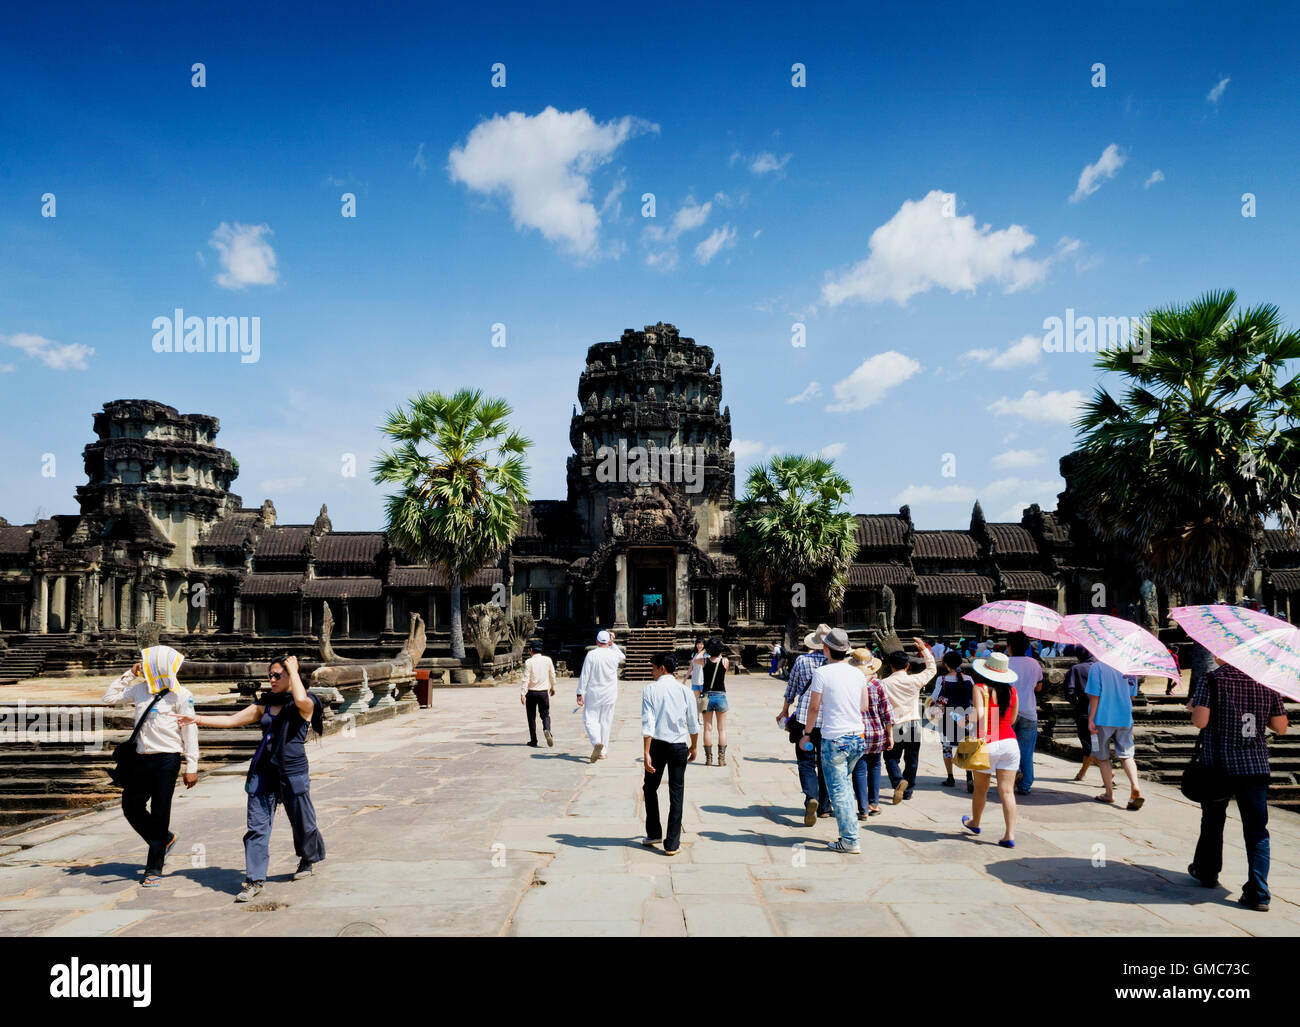 tourists main entrance of angkor wat temples famous asian landmark in siem reap cambodia - Stock Image